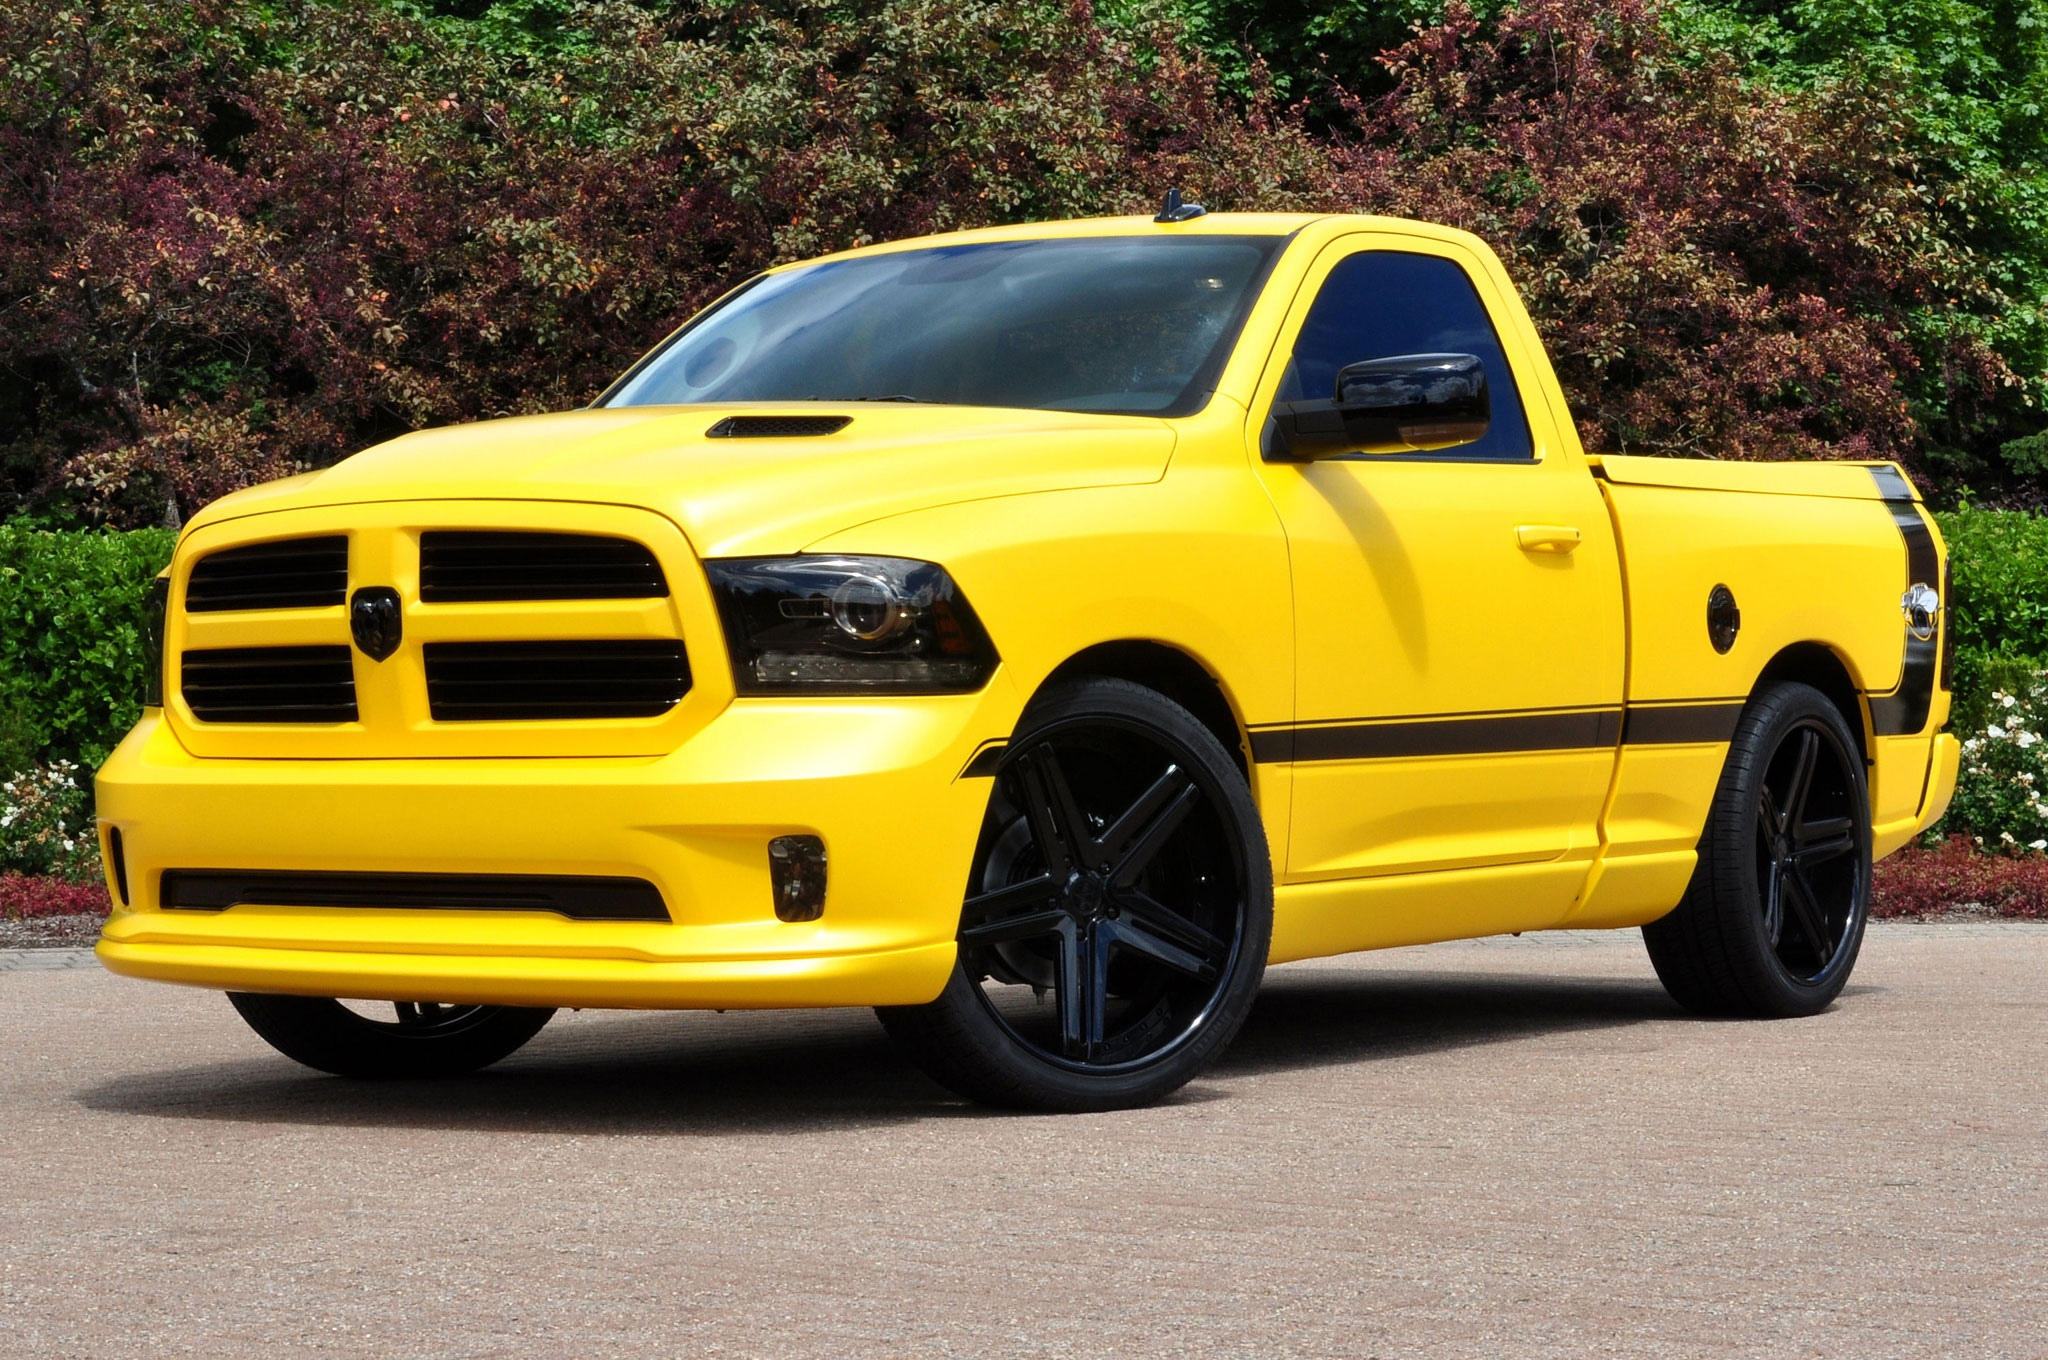 ram-1500-rumble-bee-concept-front-side-view